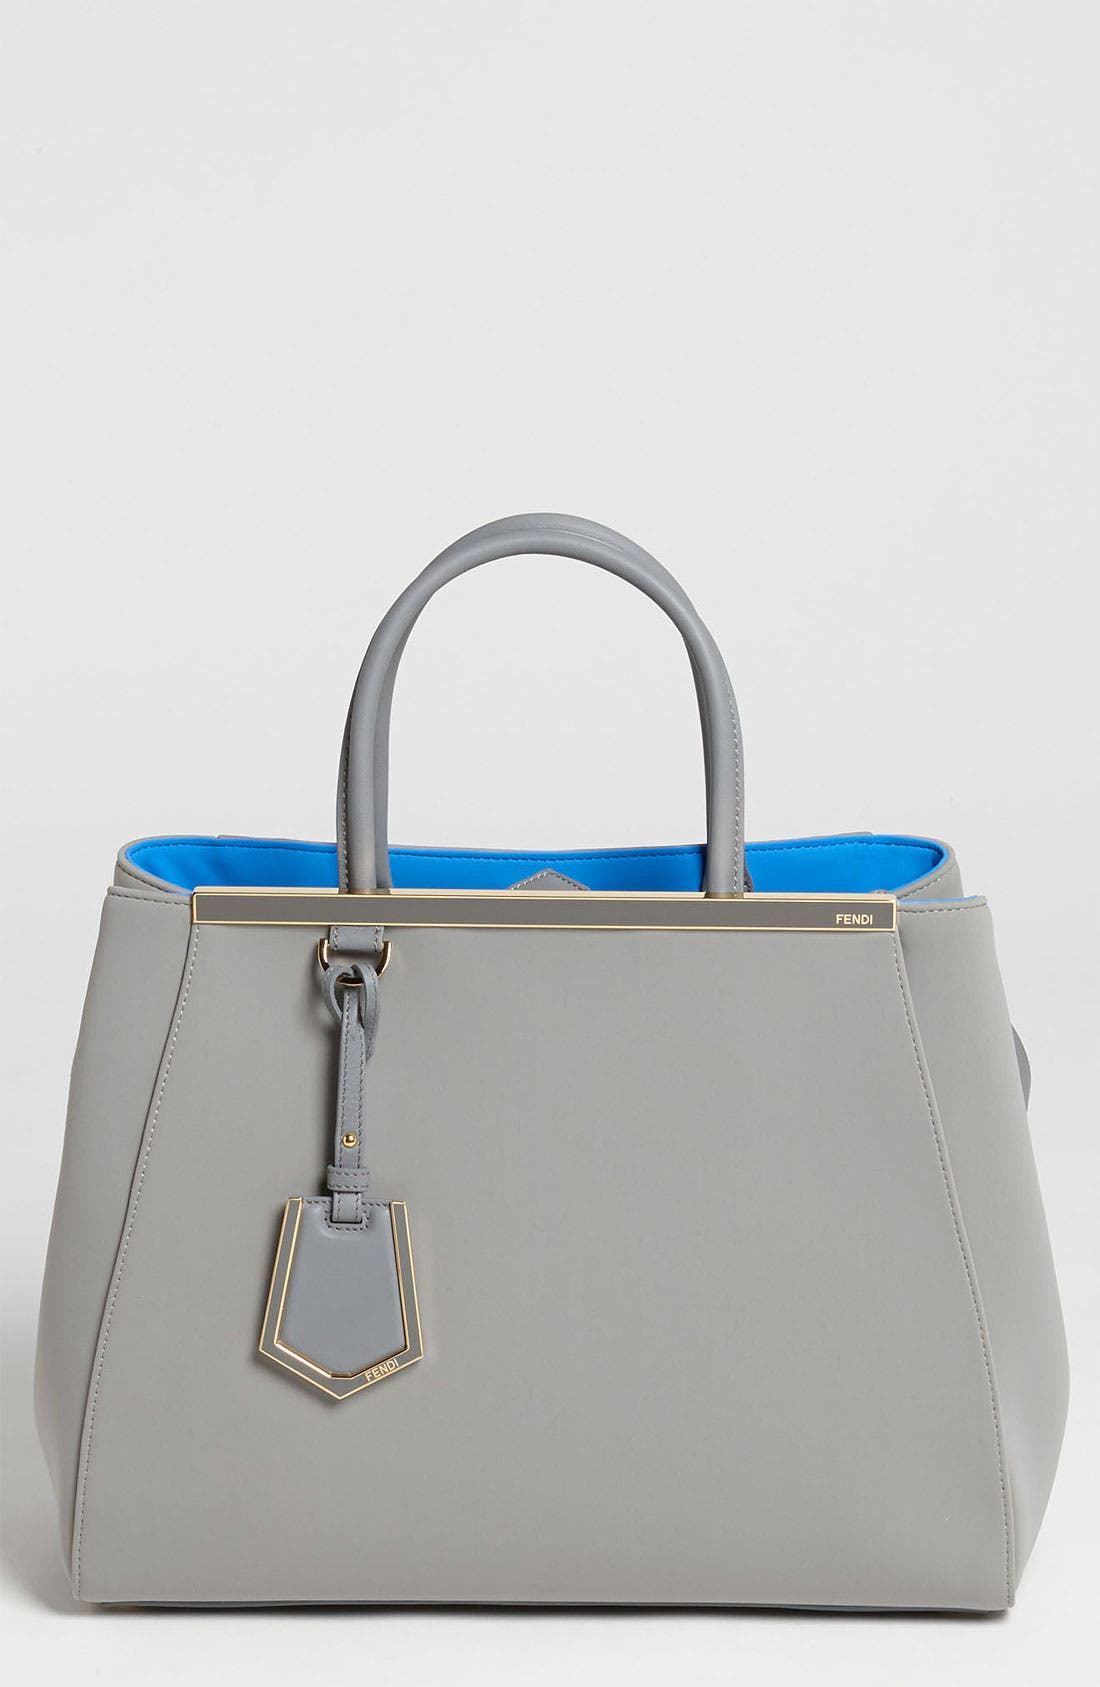 Alternate Image 1 Selected - Fendi 'Medium 2Jours' Neoprene Satchel